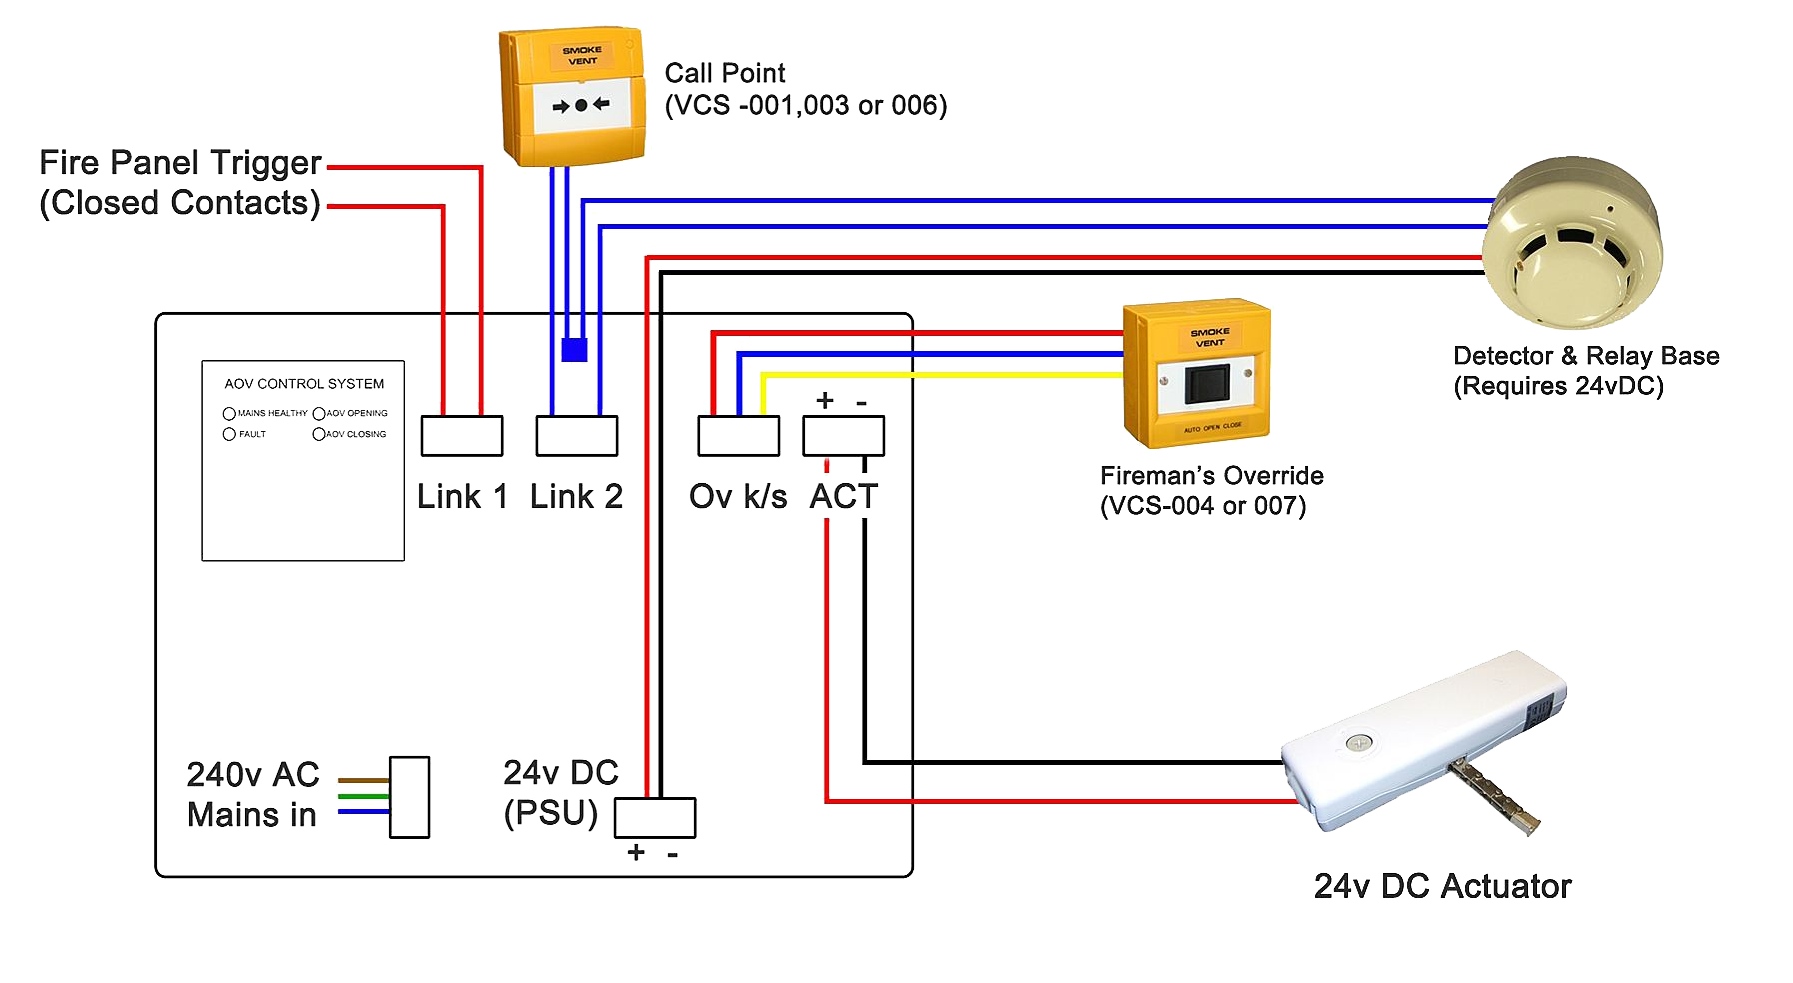 Single Zone AOV Layout Wiring wiring diagram gcs20r schematic circuit diagram \u2022 wiring diagram  at bayanpartner.co